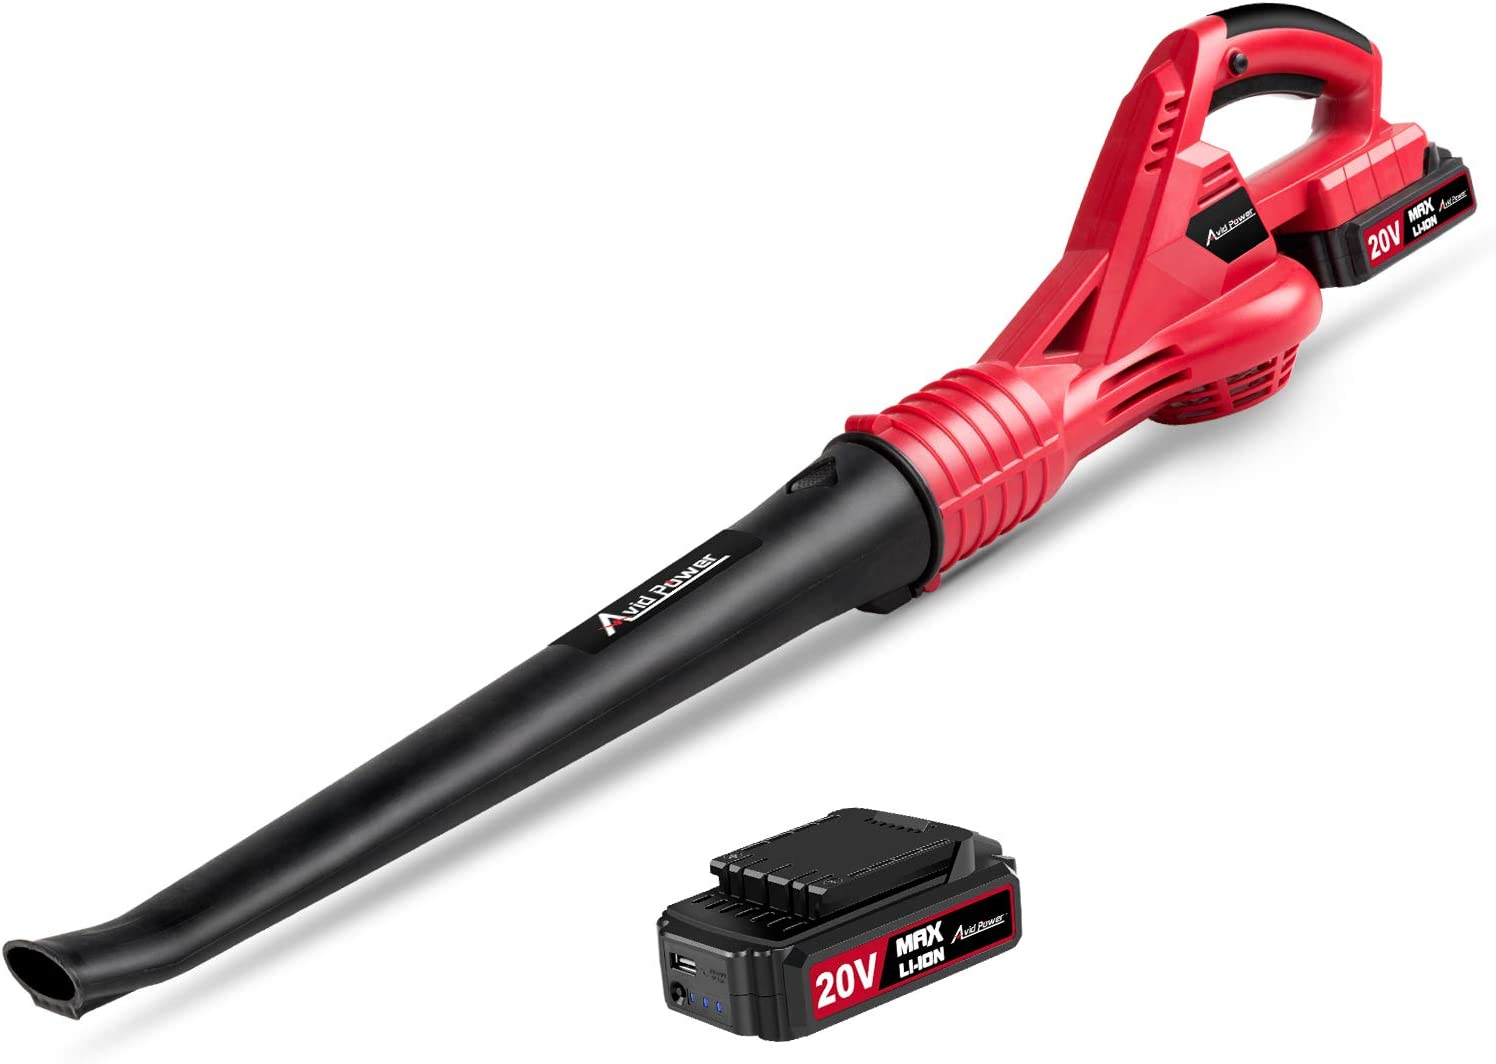 Avid Power Cordless Leaf Blower, 20V MAX Lithium Cordless Sweeper with 130 MPH Output, 2.0 Ah Battery & Charger Included, ACVB220